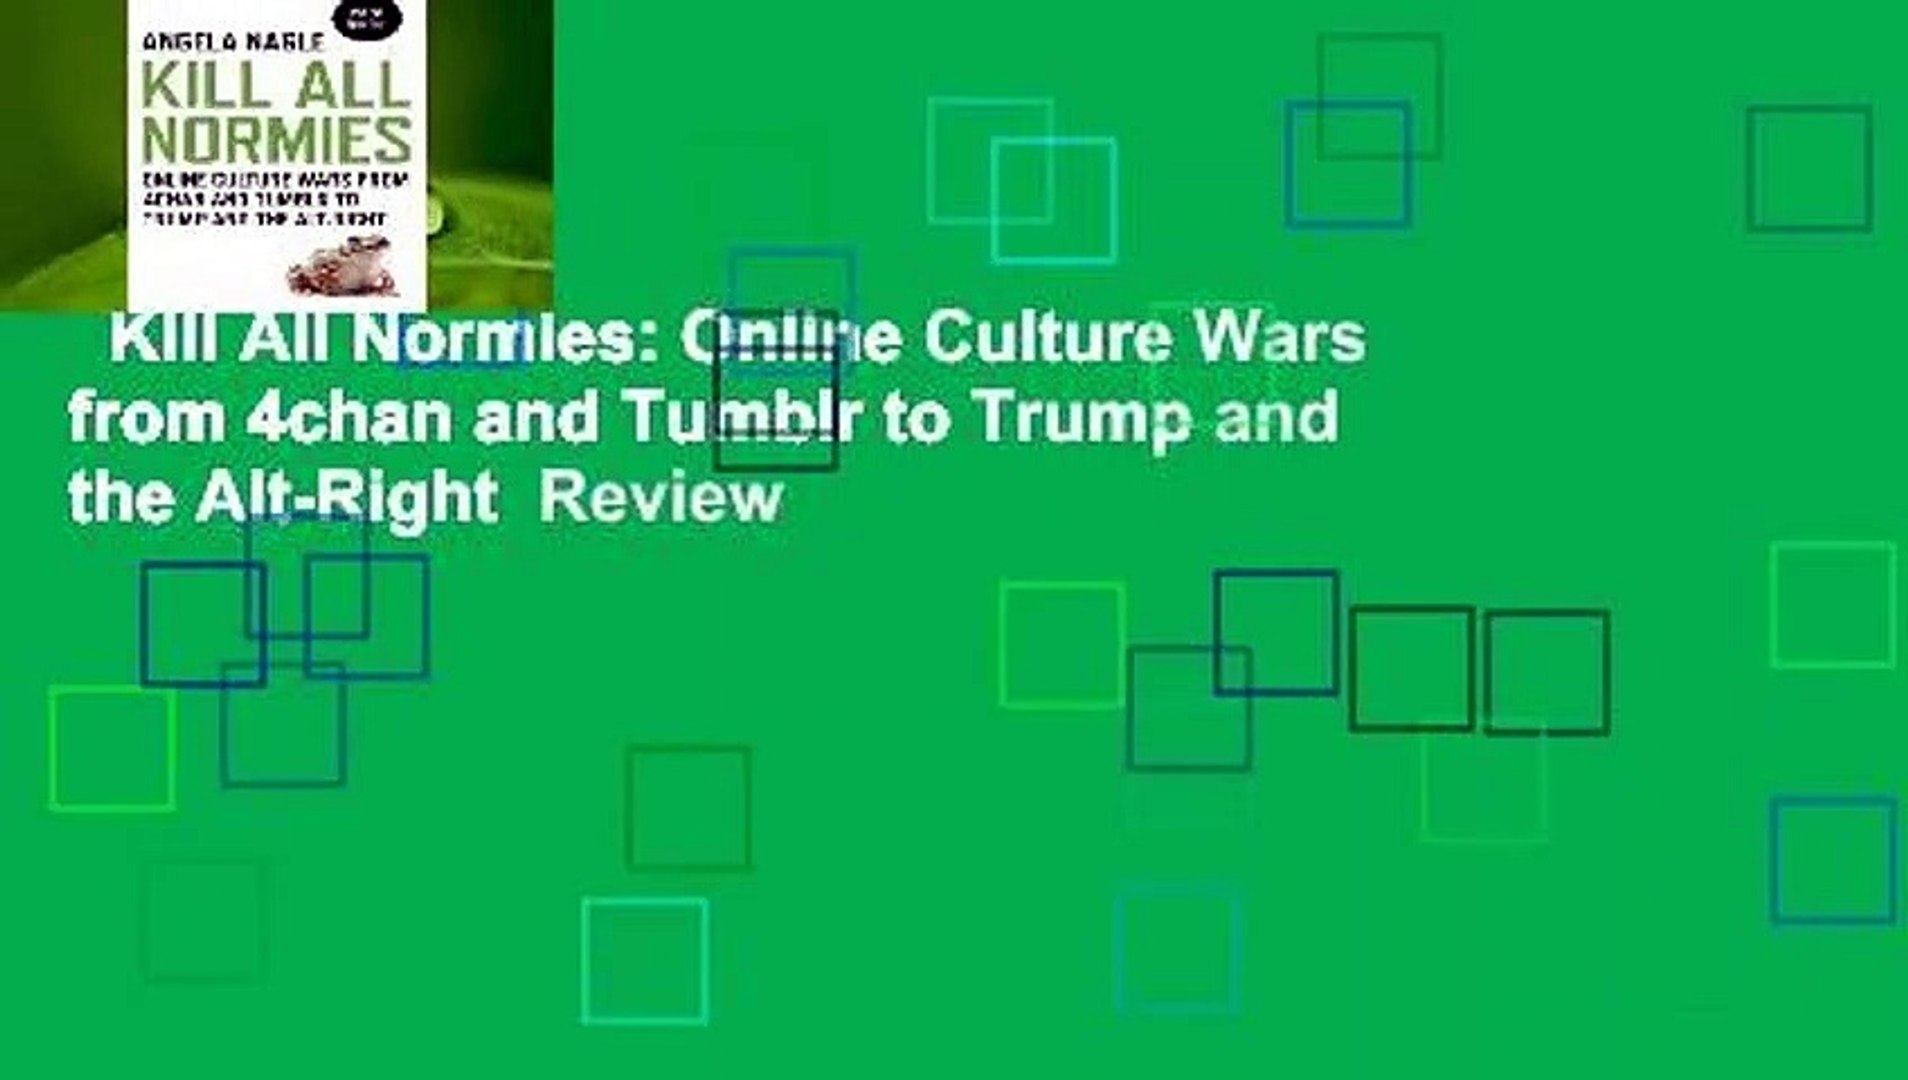 Kill All Normies: Online Culture Wars from 4chan and Tumblr to Trump and the Alt-Right  Review